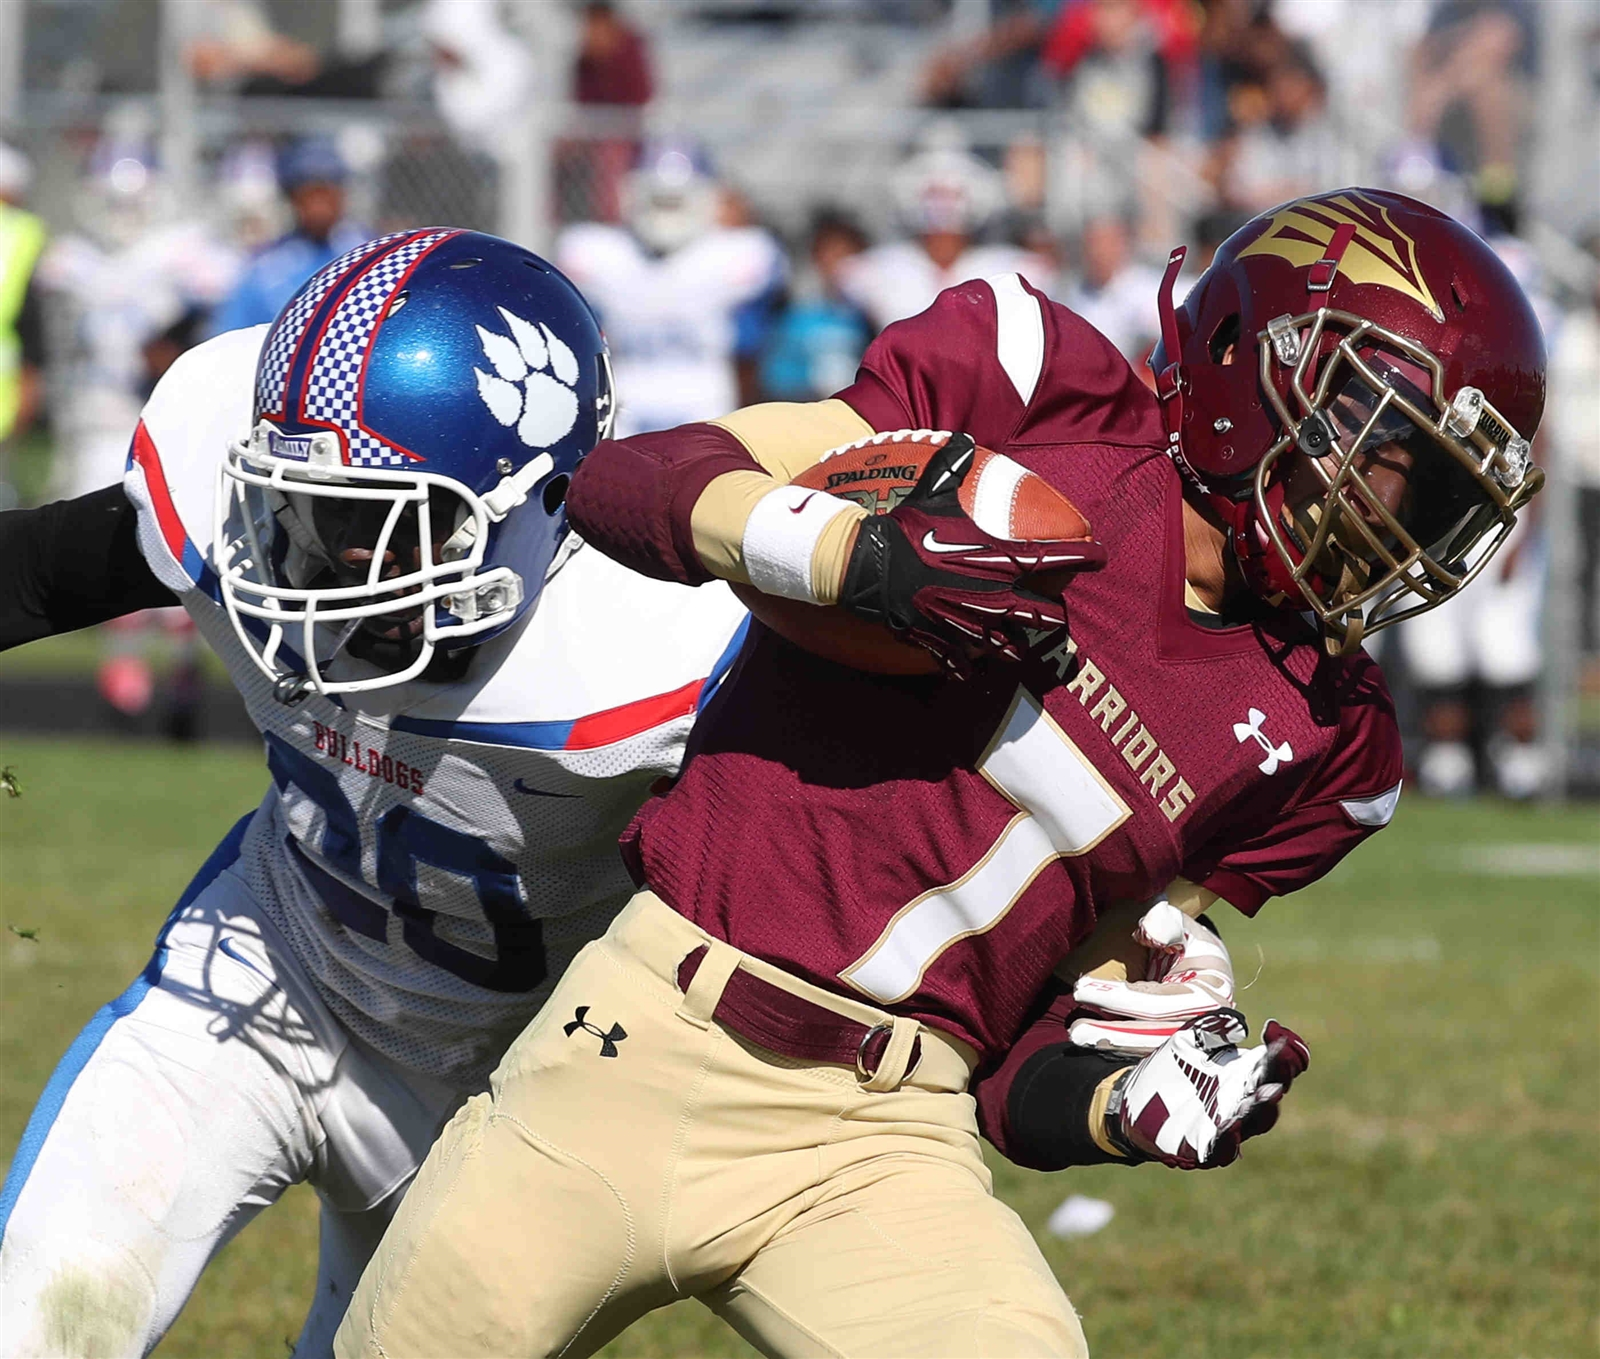 Seven Turpin and Cheektowaga head into an unbeaten clash with Olean in the Class B semifinals Friday night. (James P. McCoy/Buffalo News)